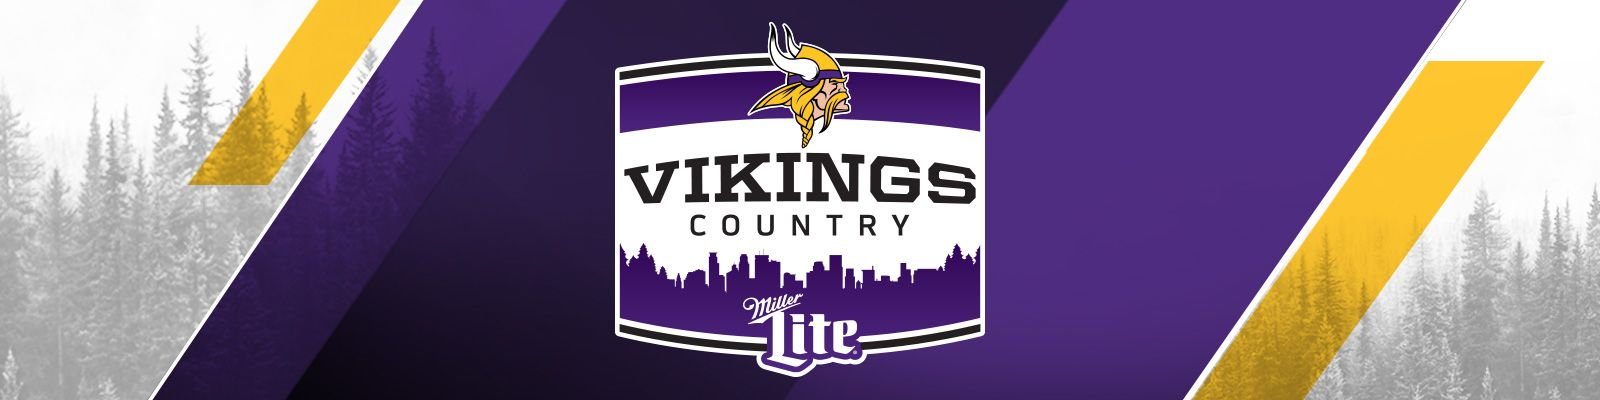 VIKINGS_COUNTRY_2_1600x400_v1_current